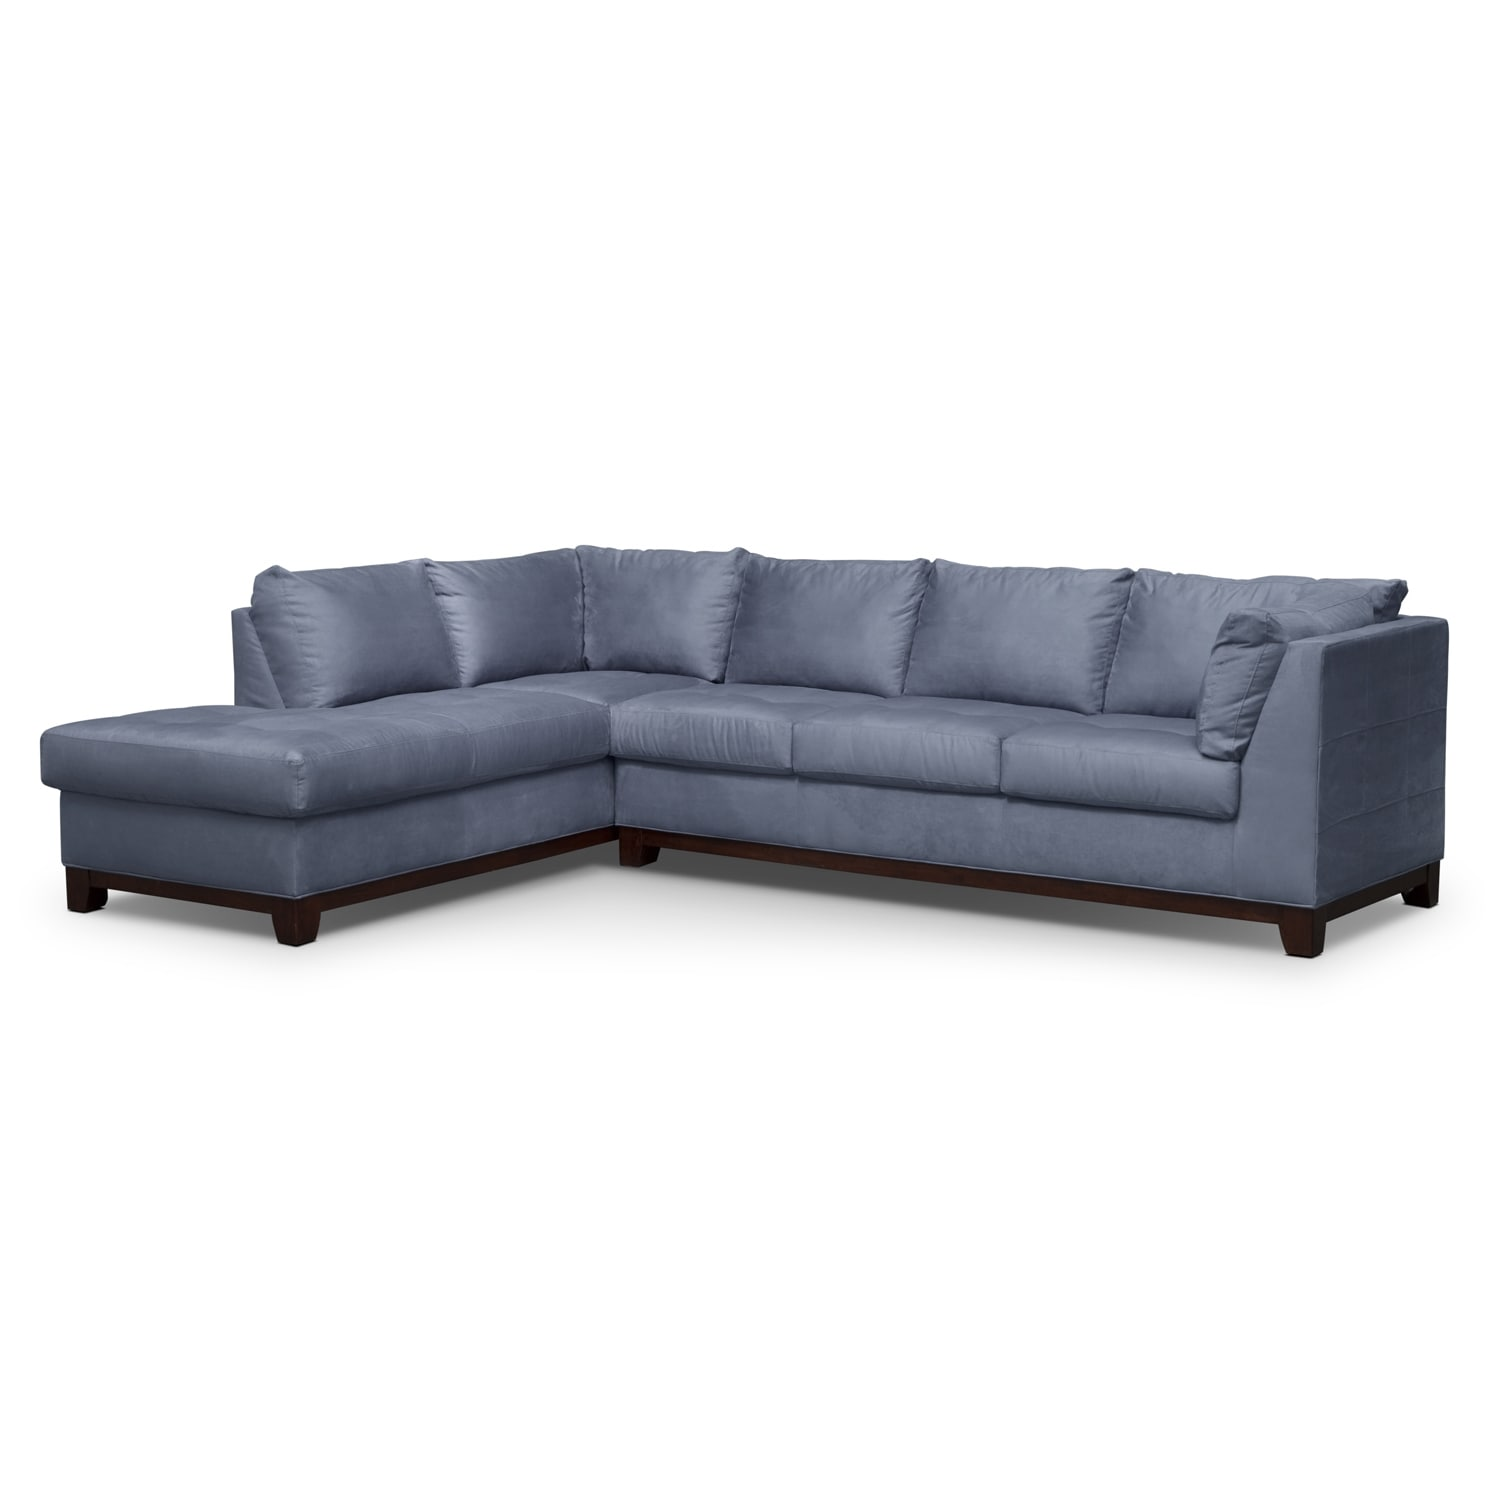 Soho 2 Piece Sectional With Left Facing Chaise Steel Value City Furniture